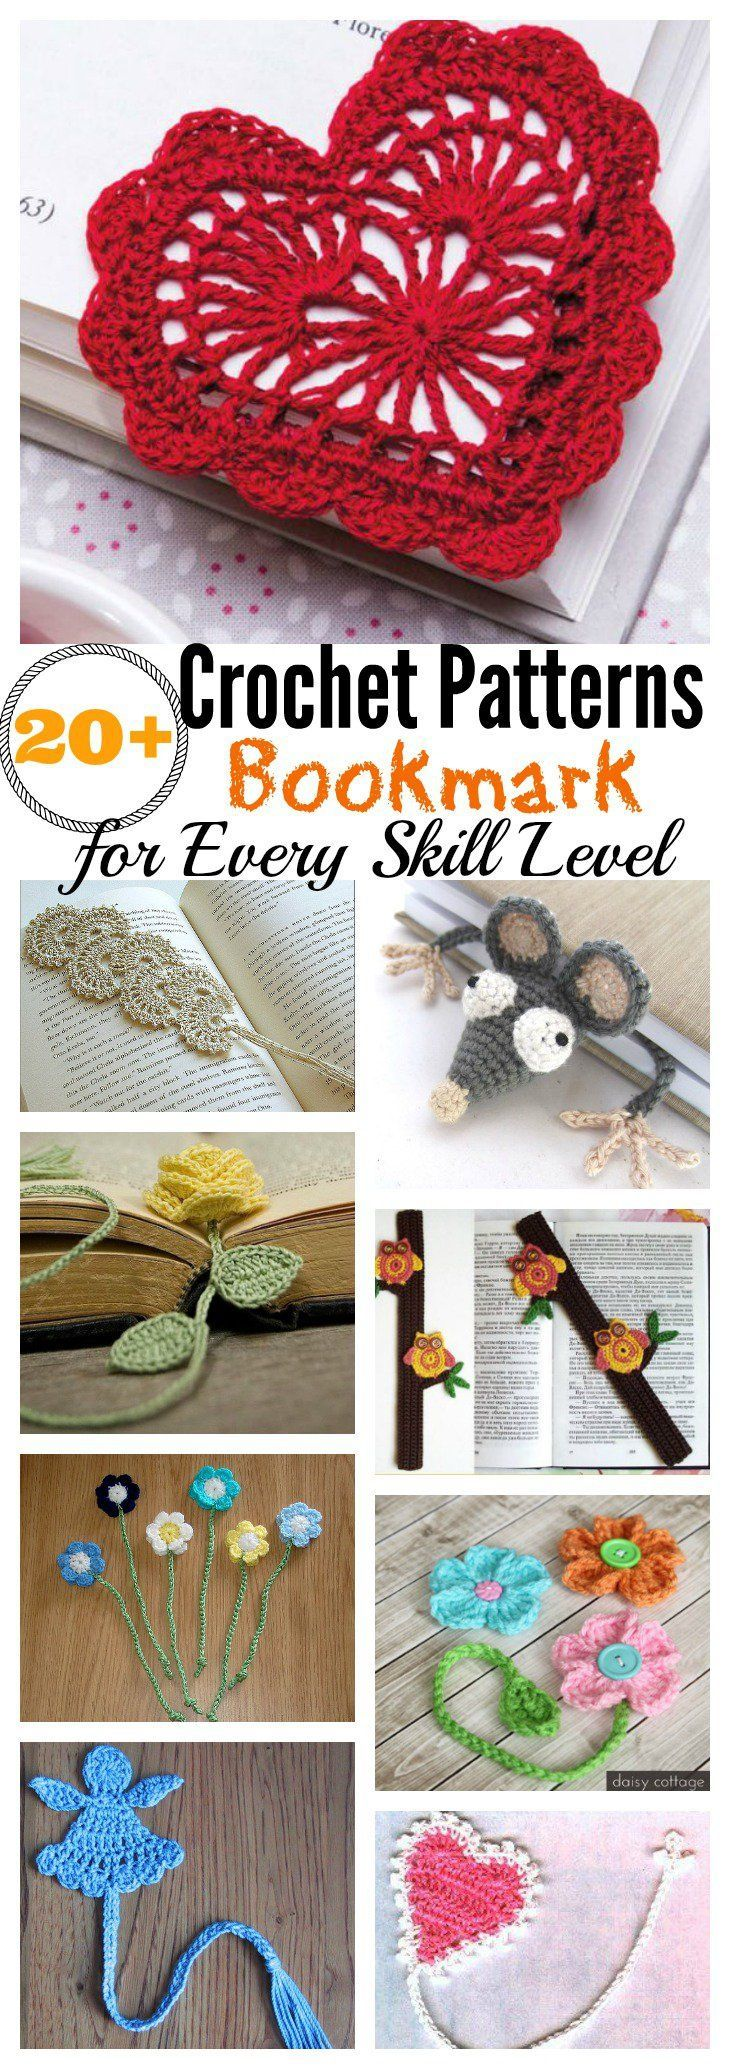 20+ Crochet Bookmark Patterns for Every Skill Level  Definitely want to make many of these.